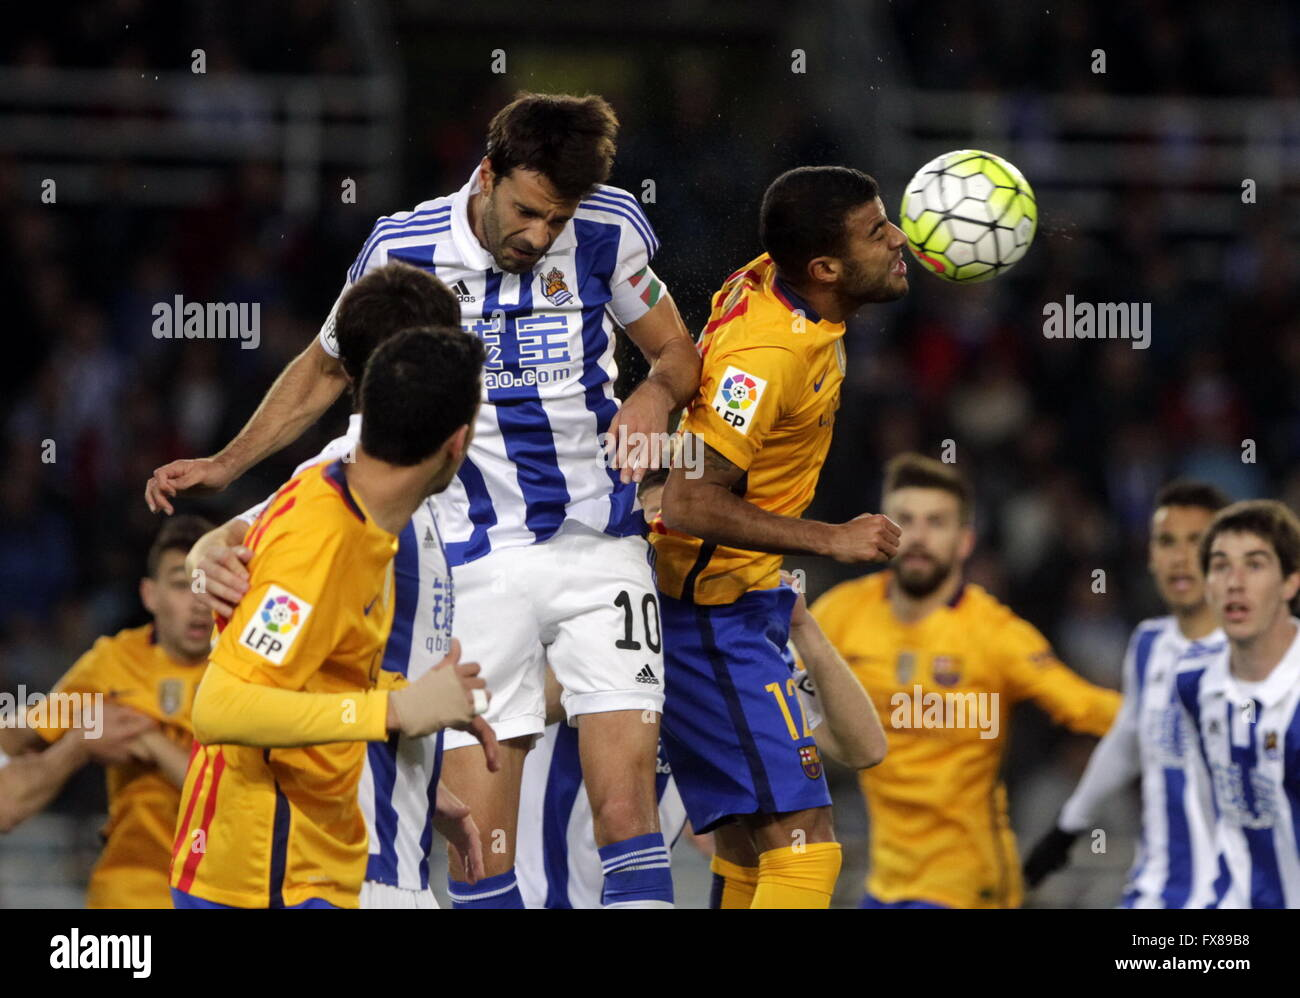 Rafinha Barcelona in action during the La Liga match espagolde Real Sociedad - FC Barcelona at Anoeta Stadium - Stock Image